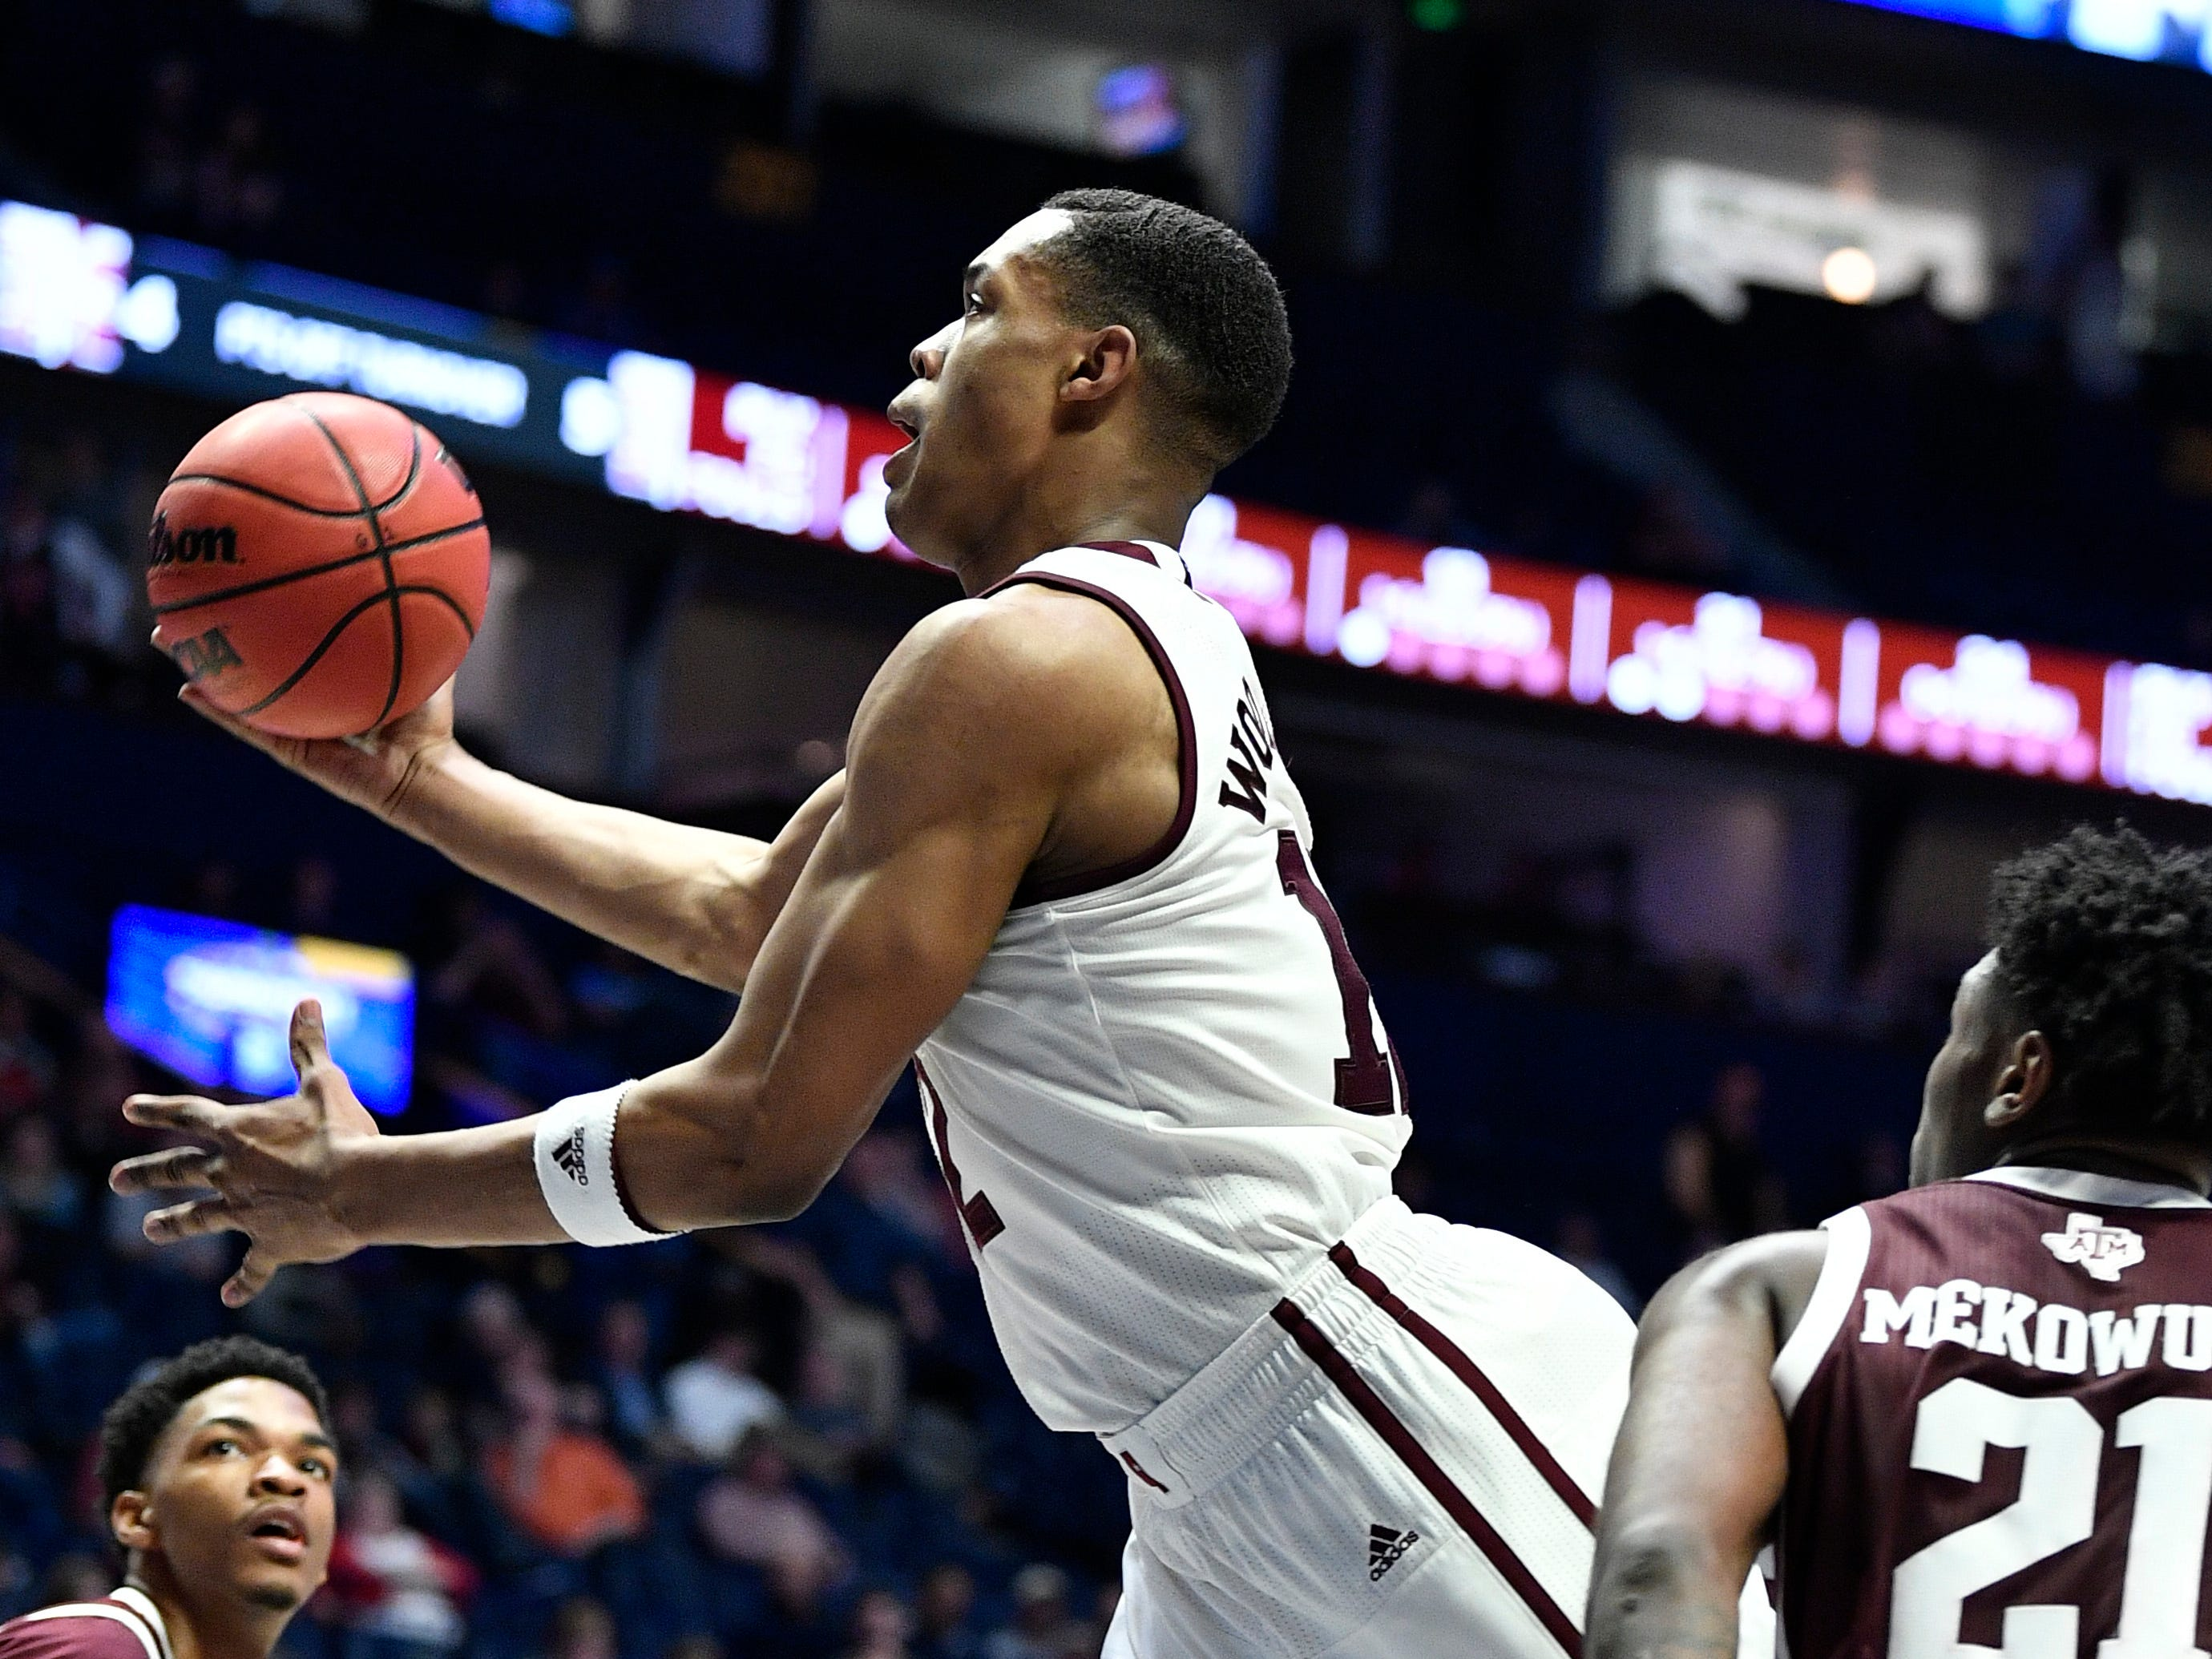 Mississippi State guard Robert Woodard (12) goes up for a shot during the second half of the SEC Men's Basketball Tournament game at Bridgestone Arena in Nashville, Tenn., Thursday, March 14, 2019.